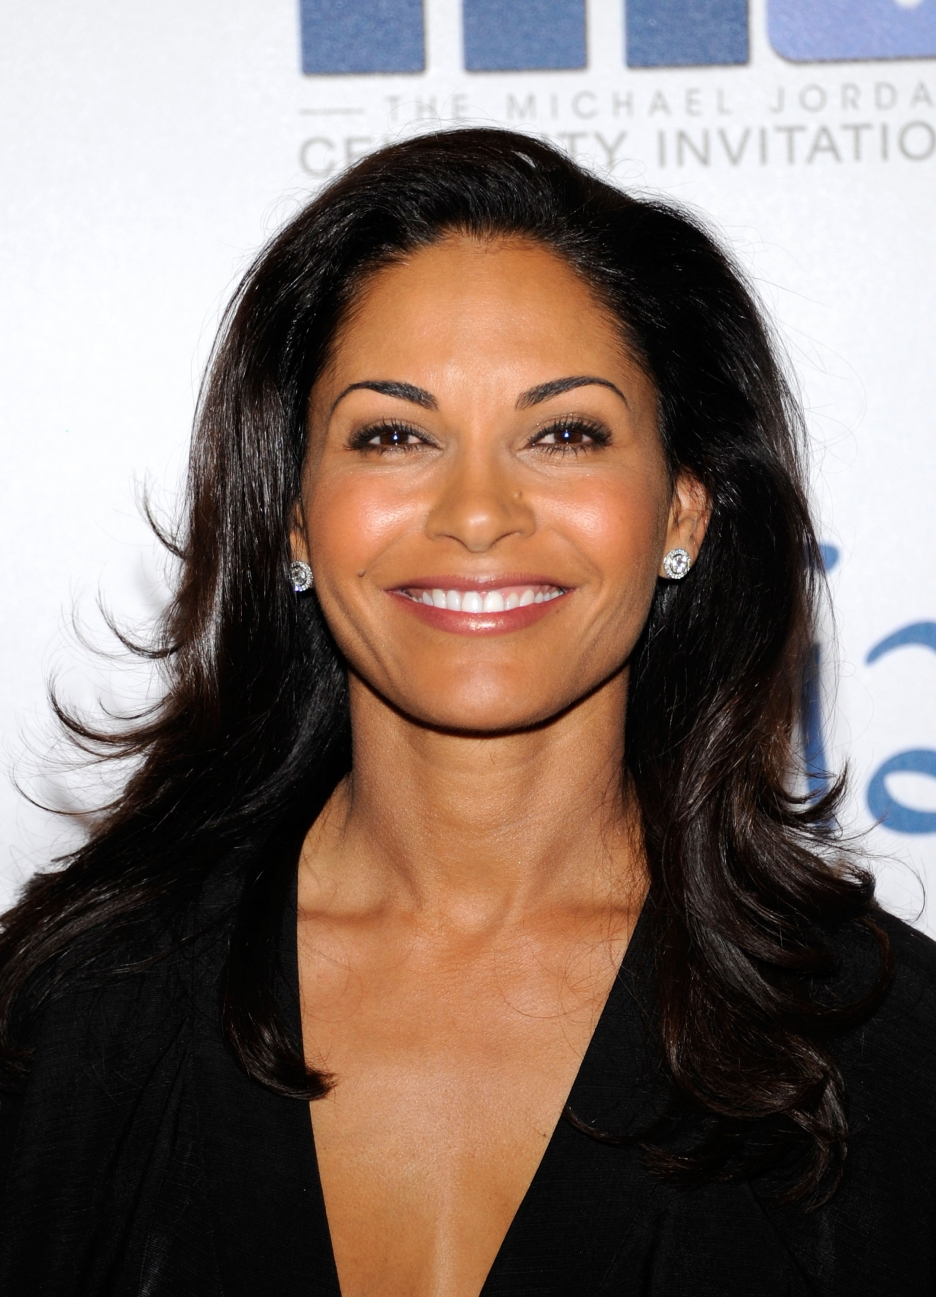 The 51-year old daughter of father (?) and mother(?) Salli Richardson in 2019 photo. Salli Richardson earned a 0,235 million dollar salary - leaving the net worth at 2 million in 2019